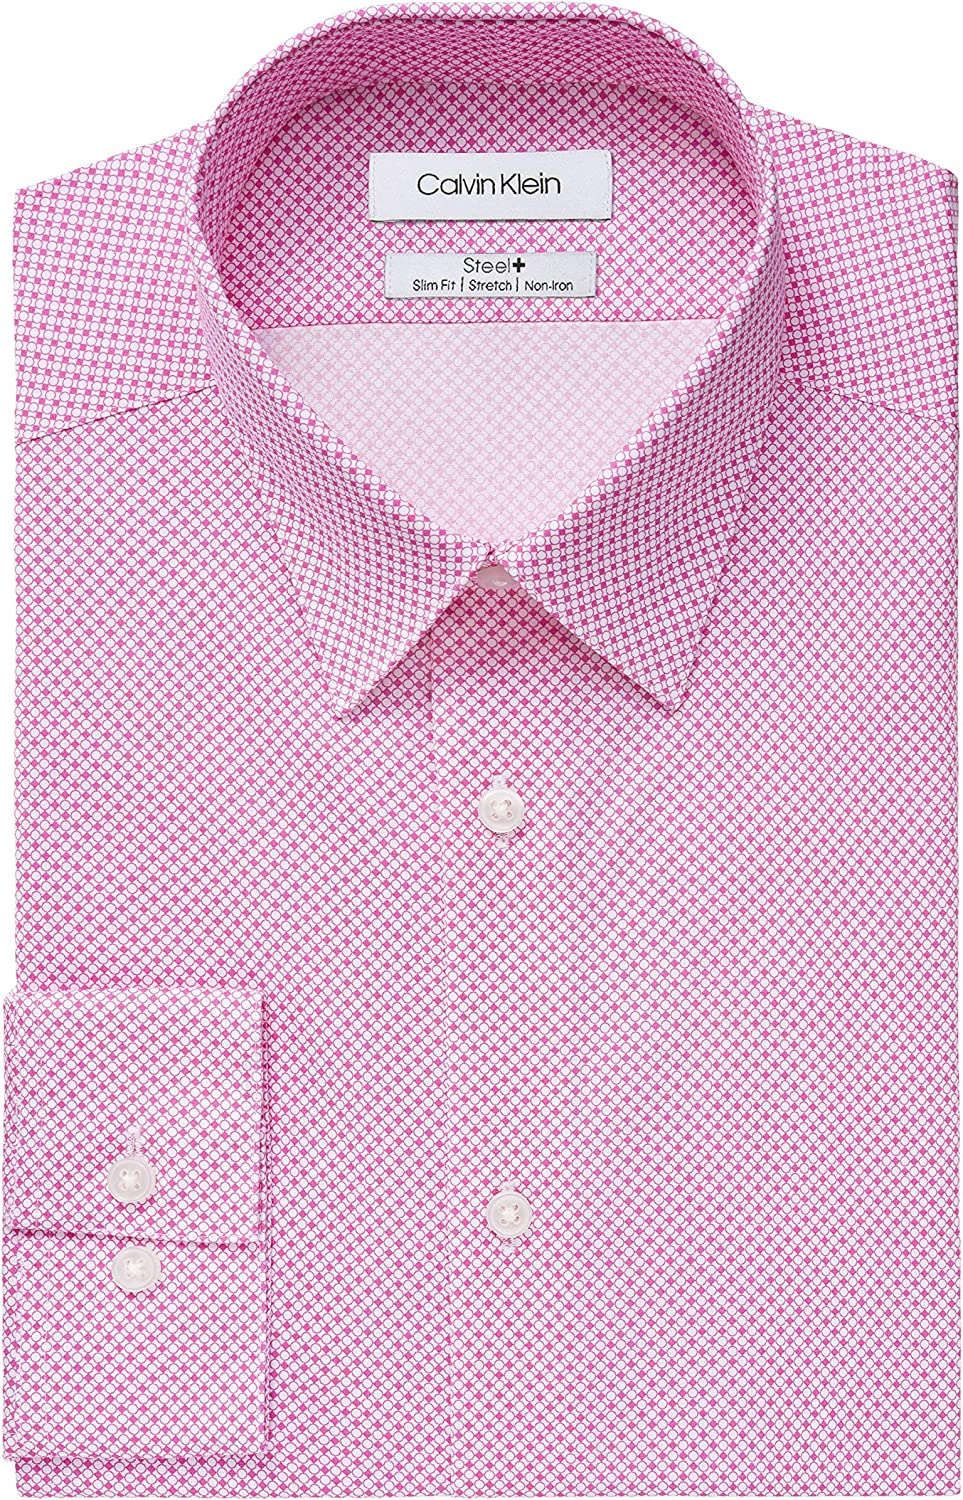 Calvin Klein Men's Dress Shirt Slim Stretch Print Fit Iron Challenge the lowest price Direct sale of manufacturer of Japan Non